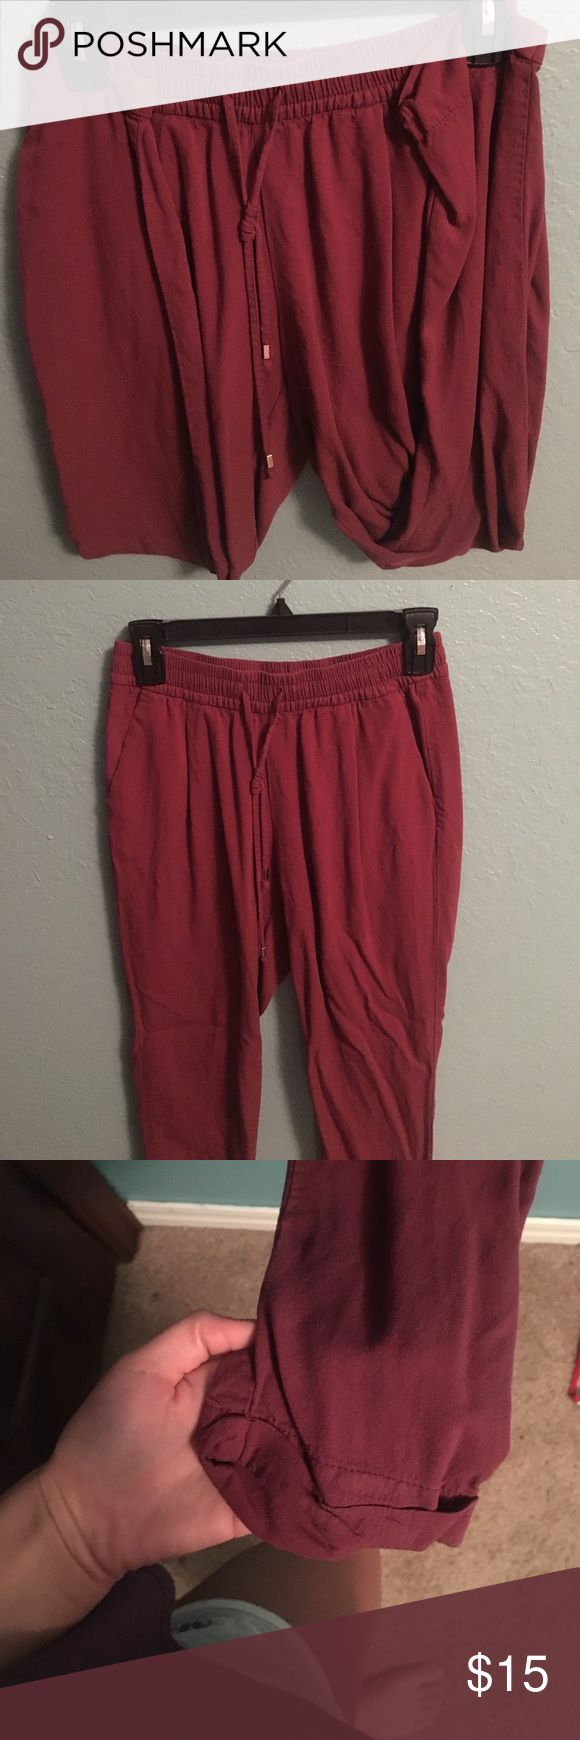 Nice maroon joggers :) Super comfy and show your curves on! Old Navy Pants Jumpsuits & Rompers